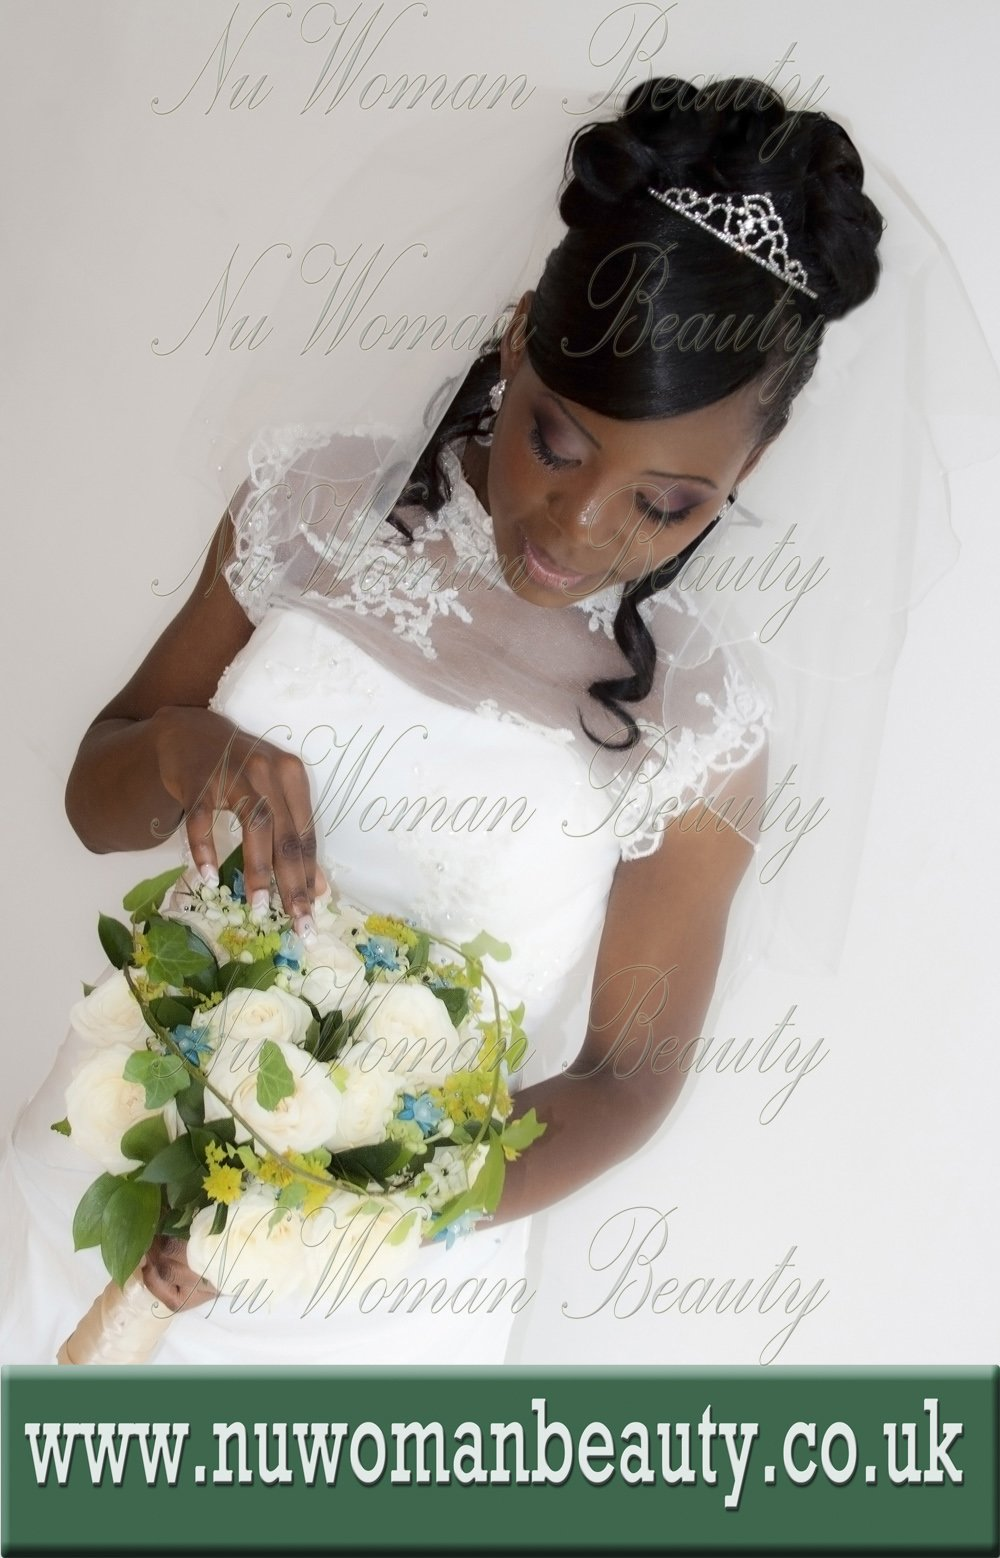 The Best Mobile Bridal Afro Hair Makeup Artist For Black Skin Pictures